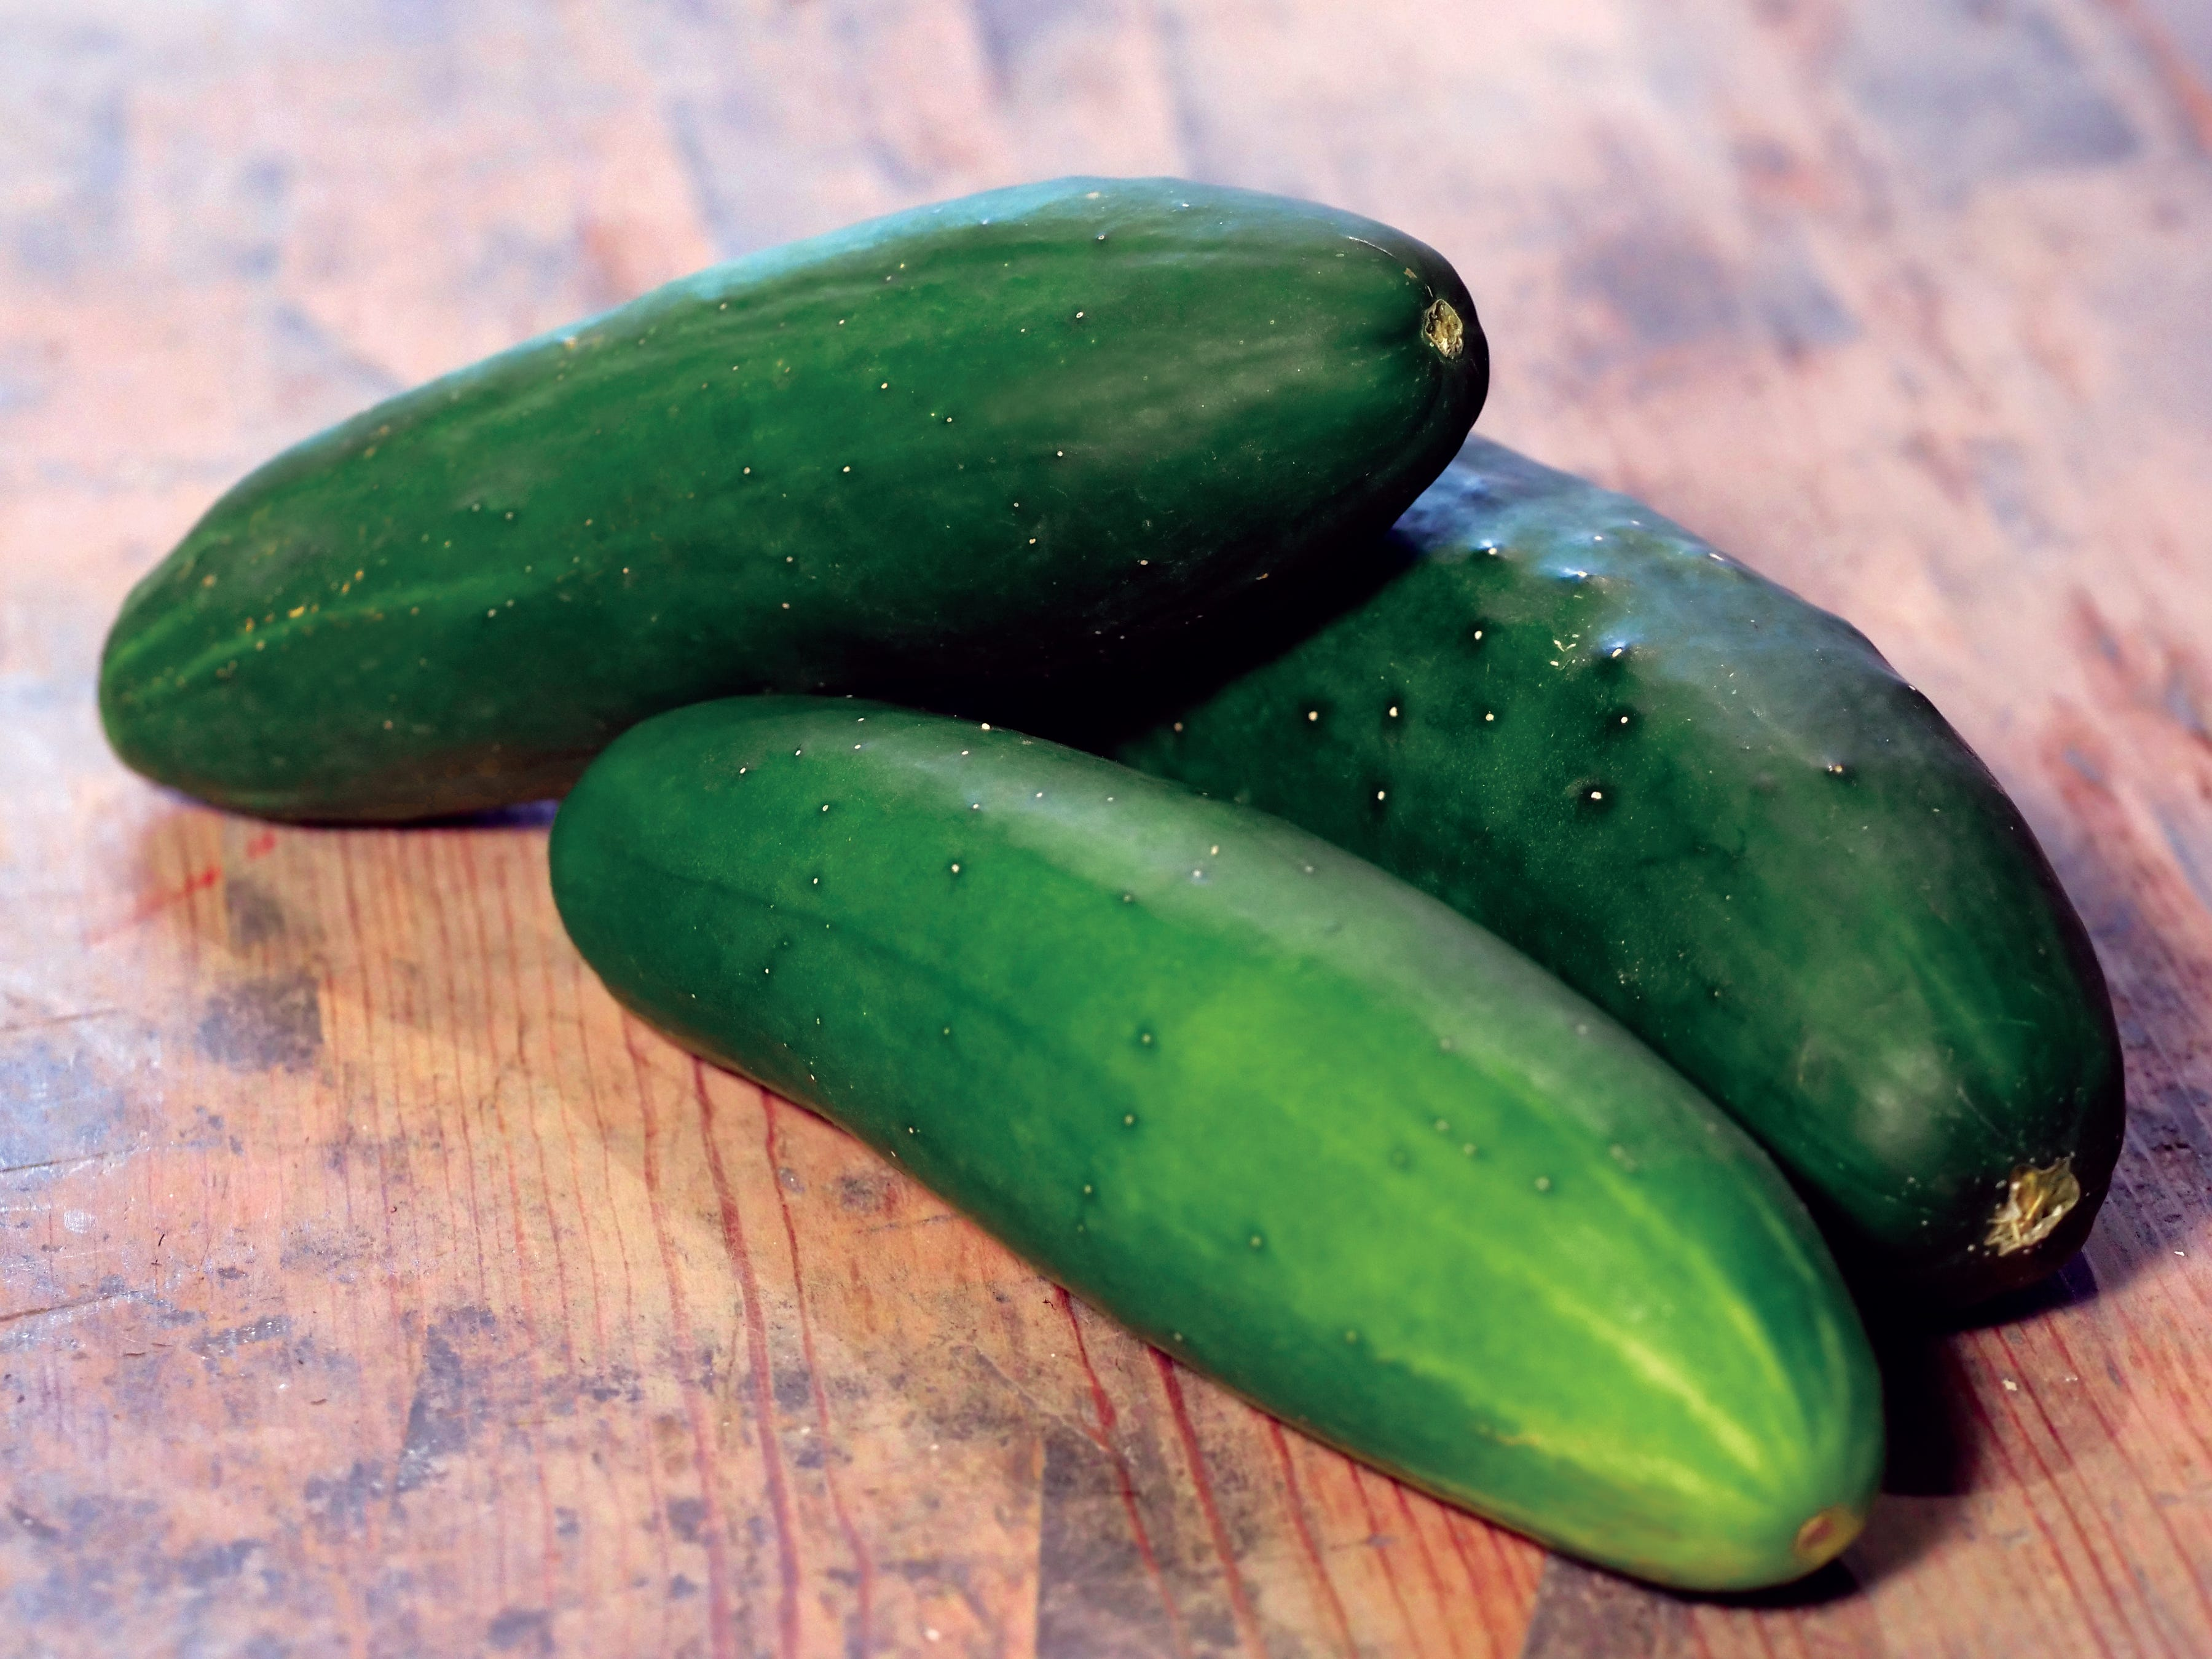 Cucumber Park's Whopper, grown from seed, produces fruit in 55 days.